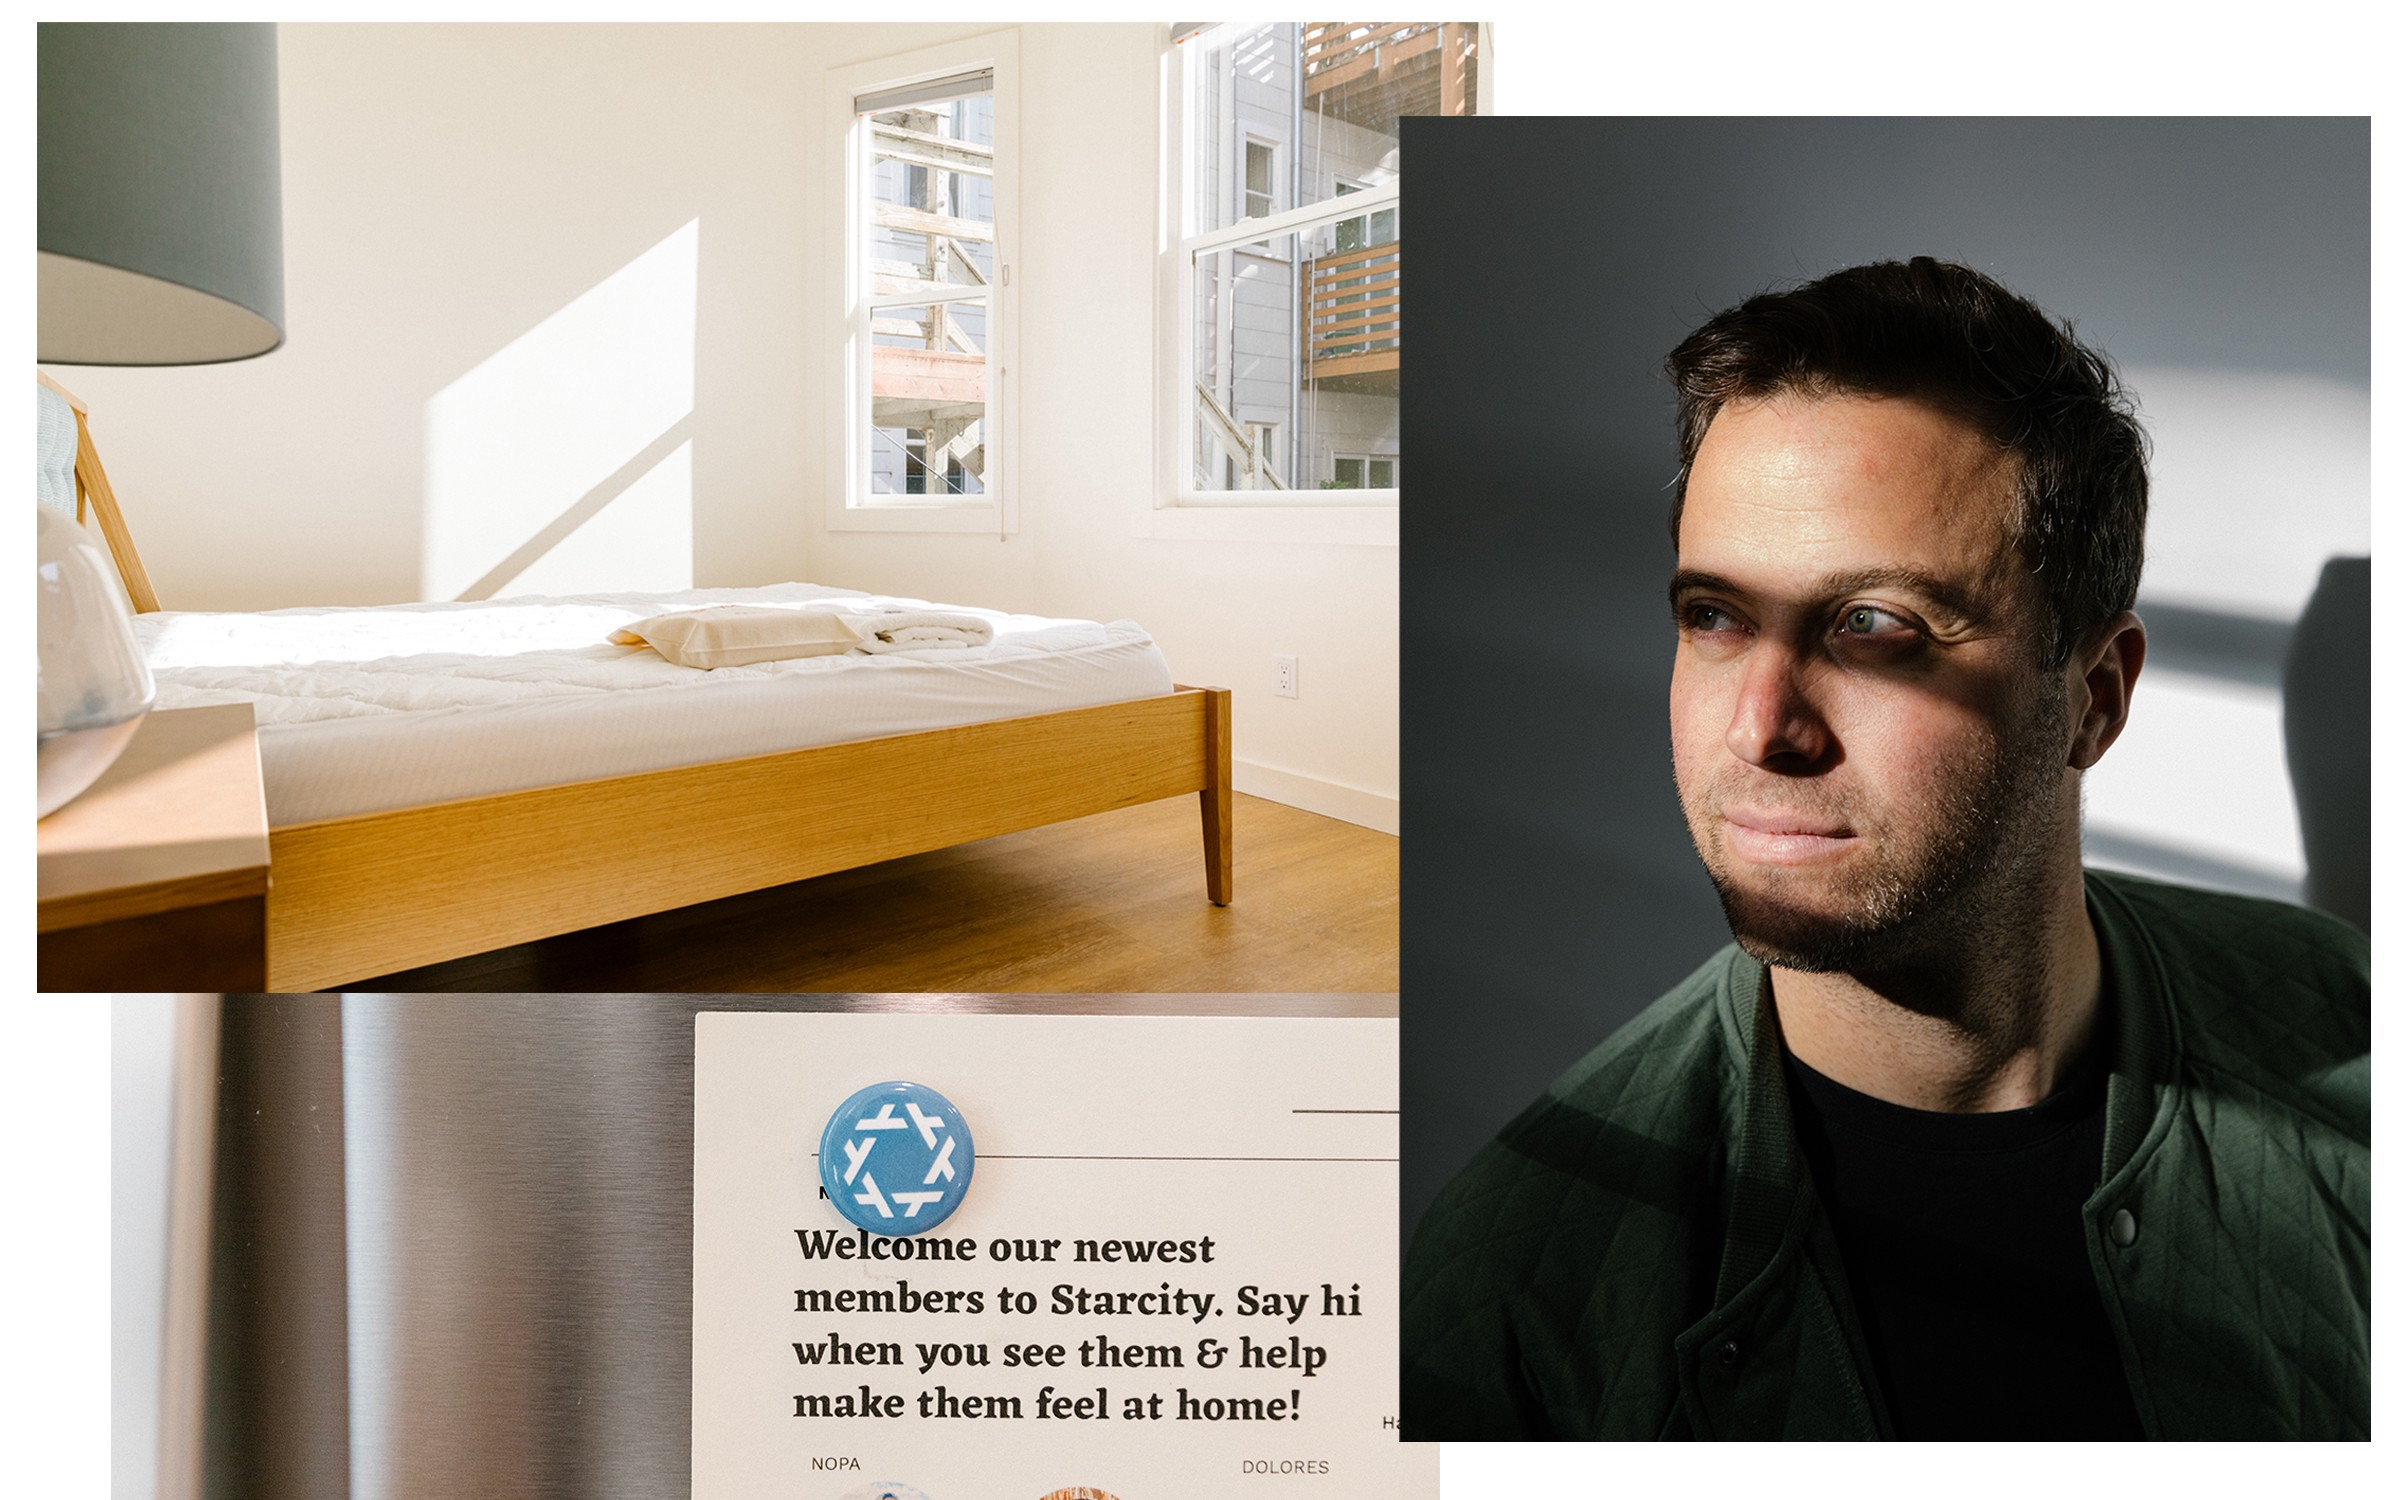 A photo collage of an empty bedroom, a portrait of Starcity CEO Jon Dishotsky, and a refrigerator with a welcome card.